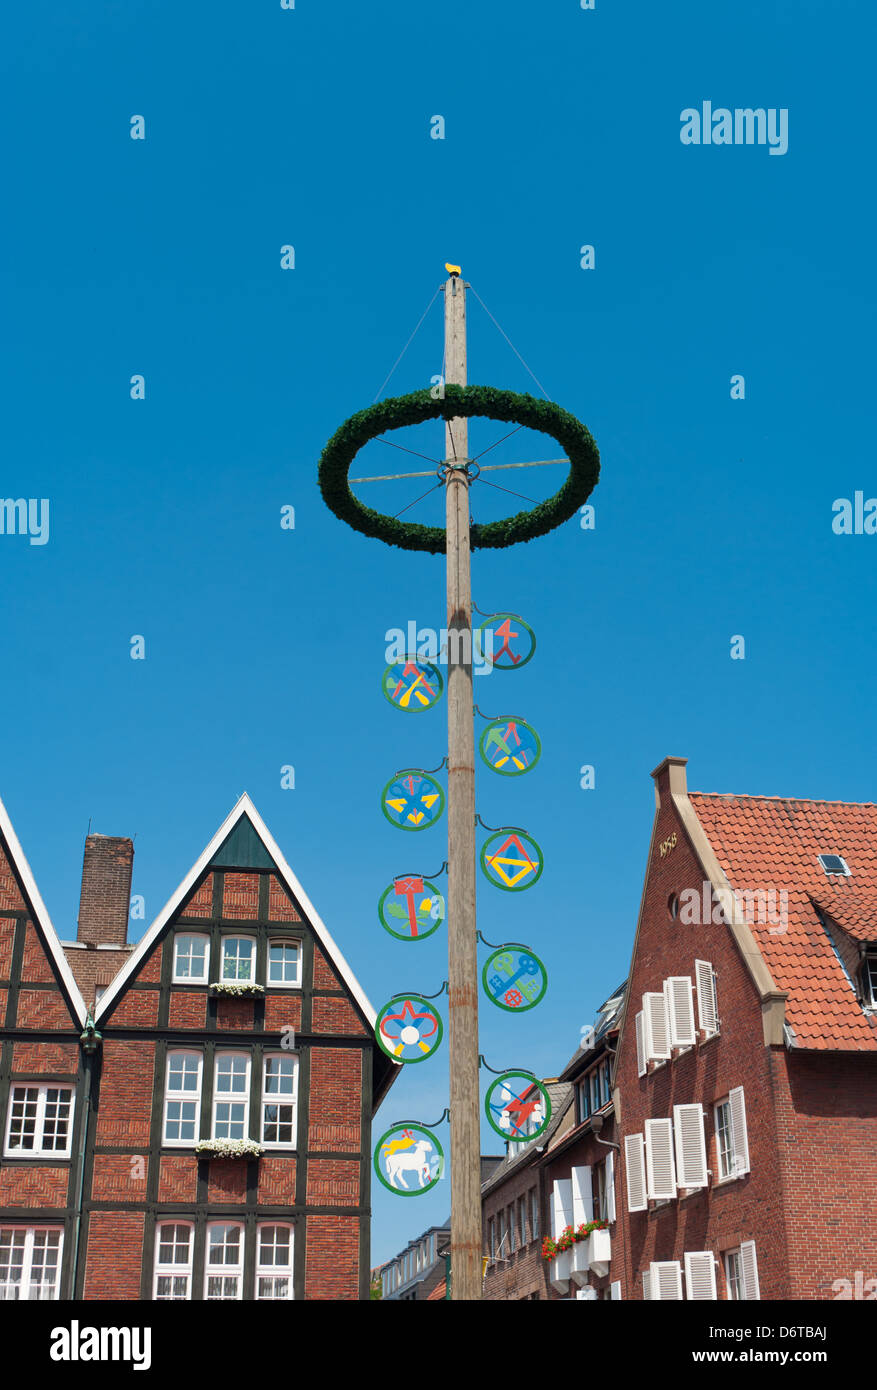 traditional maypole in munster, germany - Stock Image